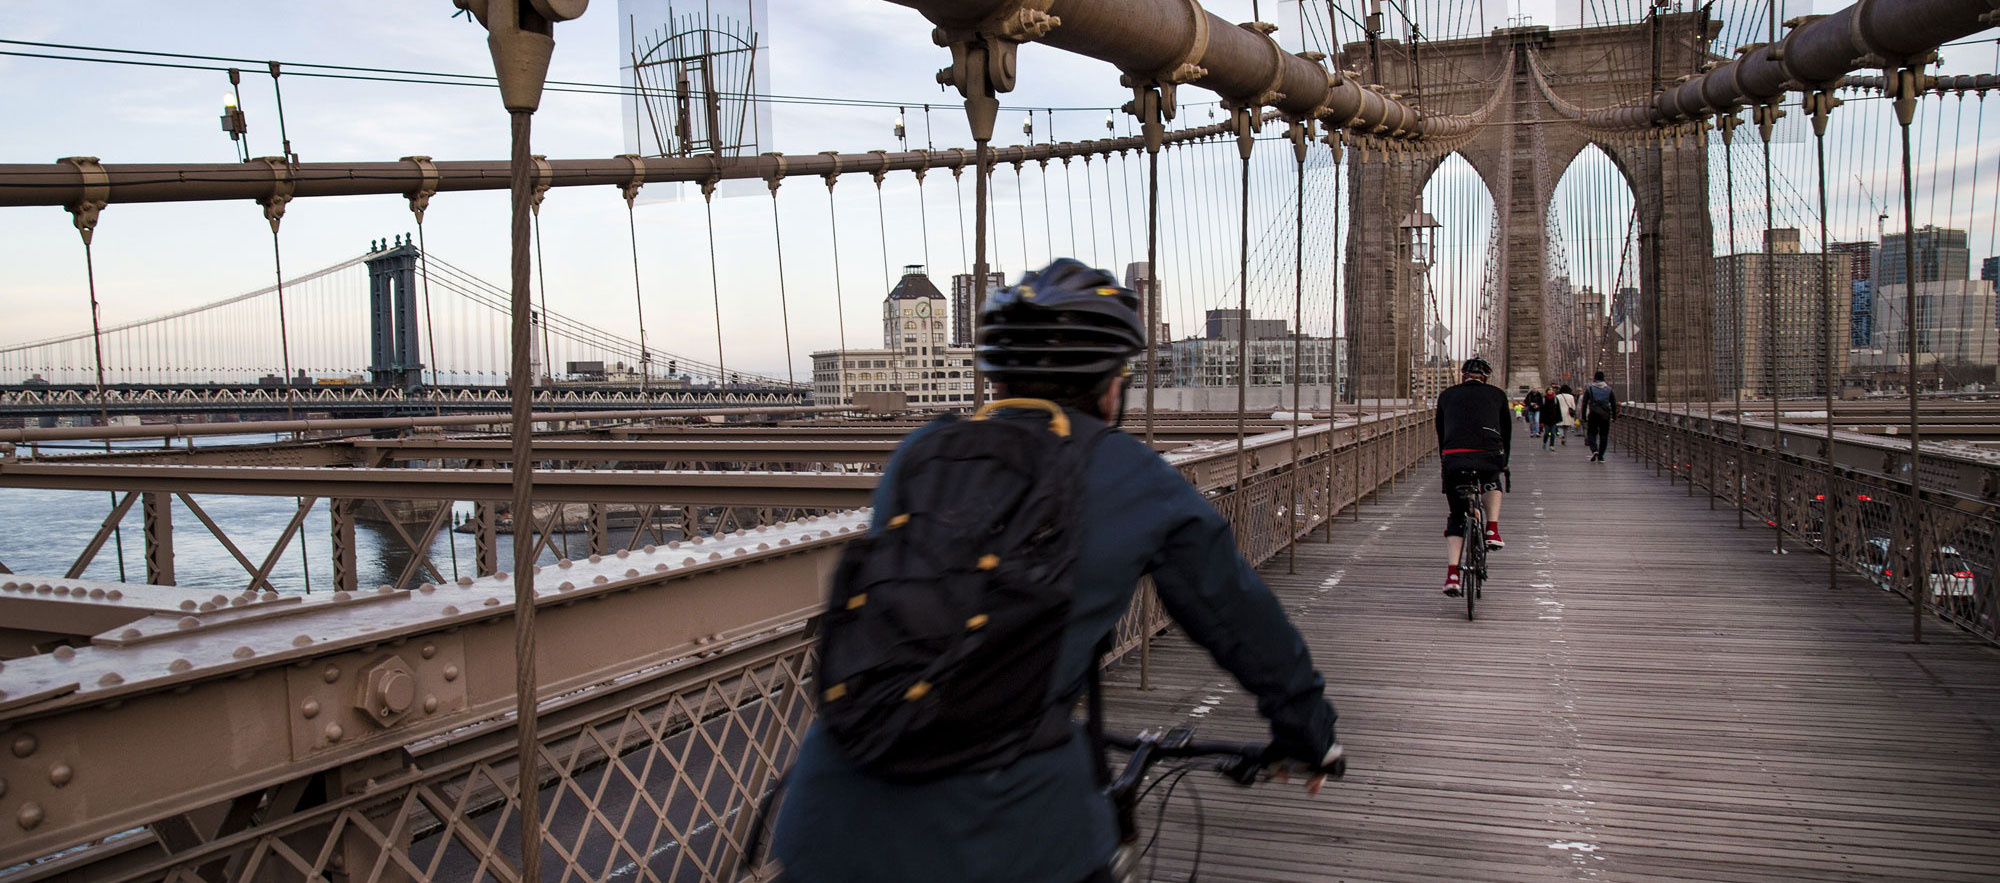 Pedestrians and bicyclist crossing Brooklyn bridge